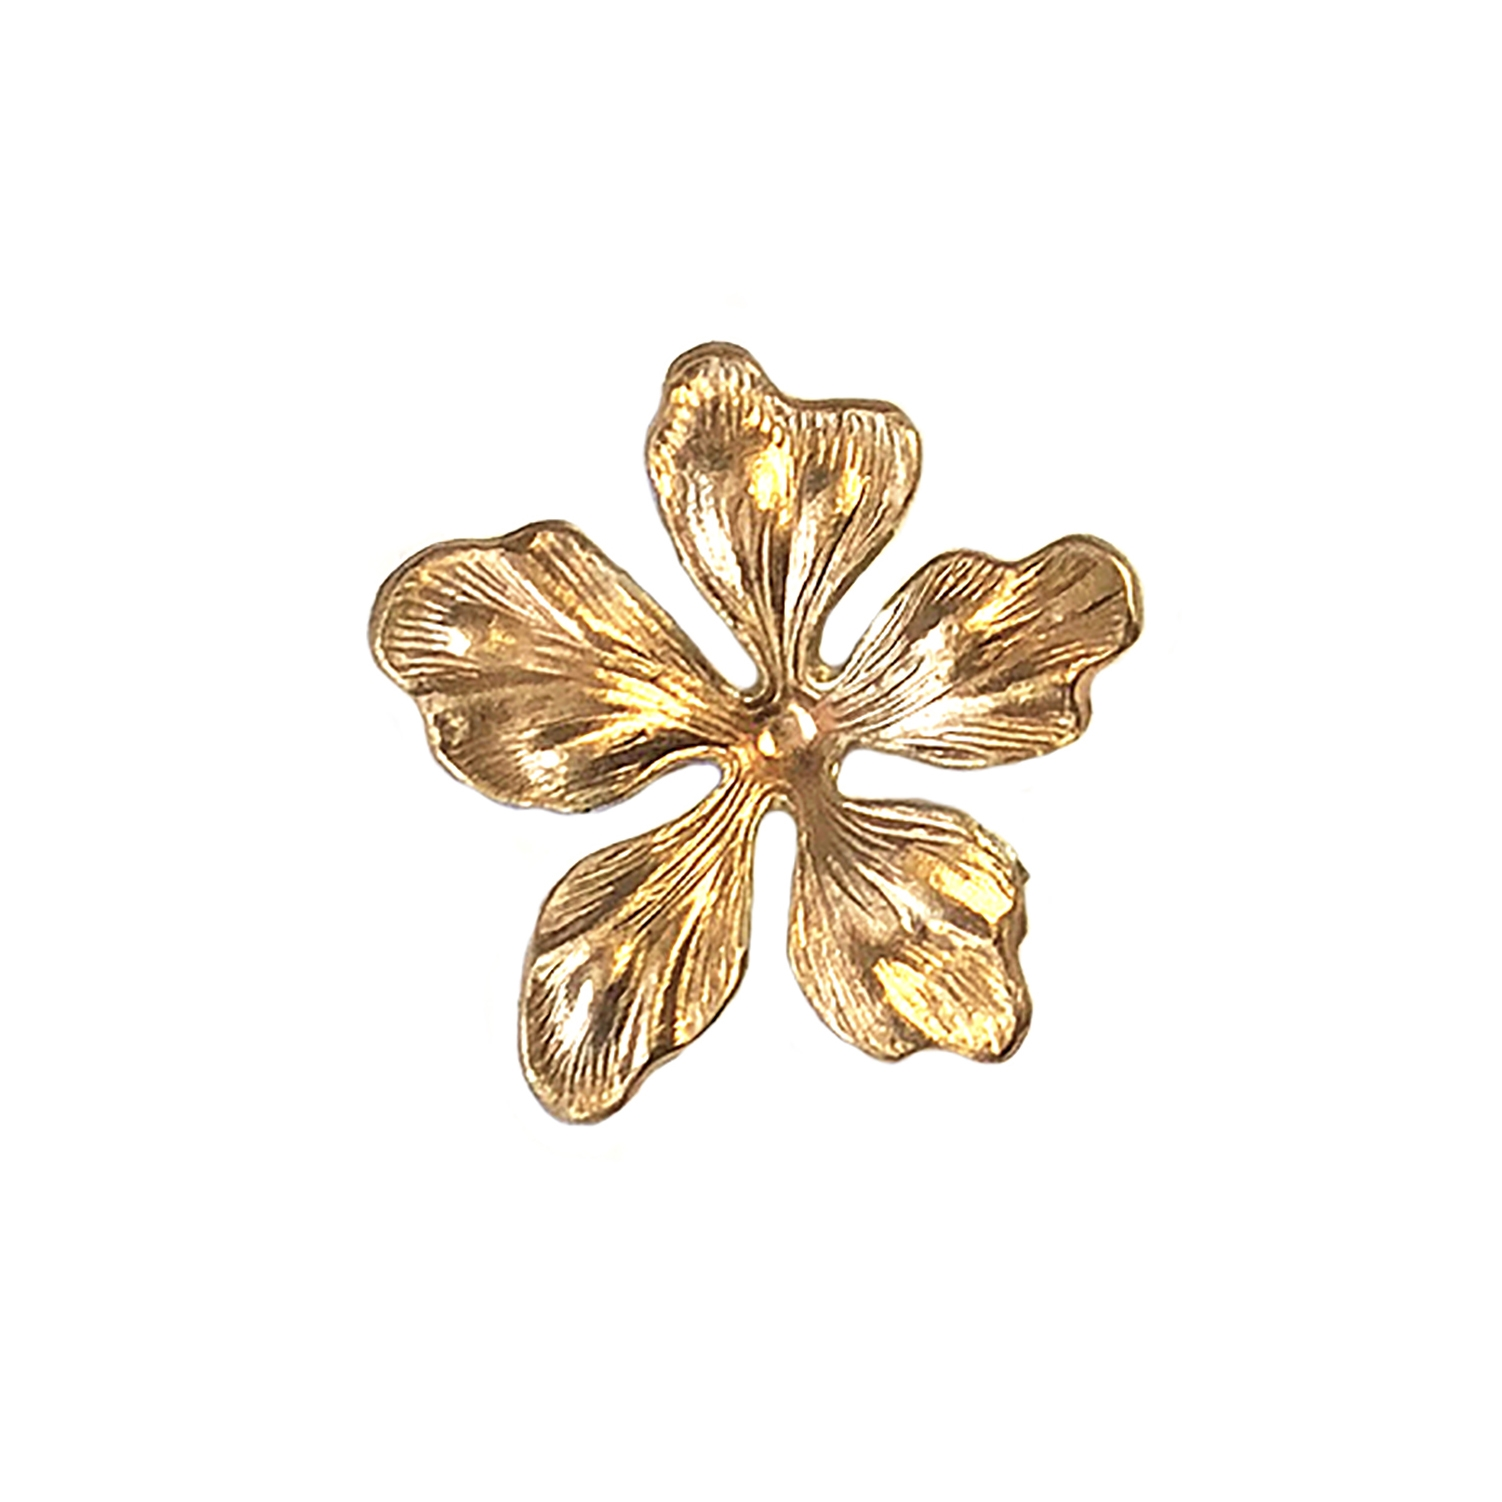 brass flower, dogwood, flower parts, vintage jewelry making supplies, unplated brass, brass stampings, old flower parts, old jewelry parts, jewelry findings made in the USA, dogwood flower, vintage flower jewelry, B'sue Boutiques, flower power jewelry